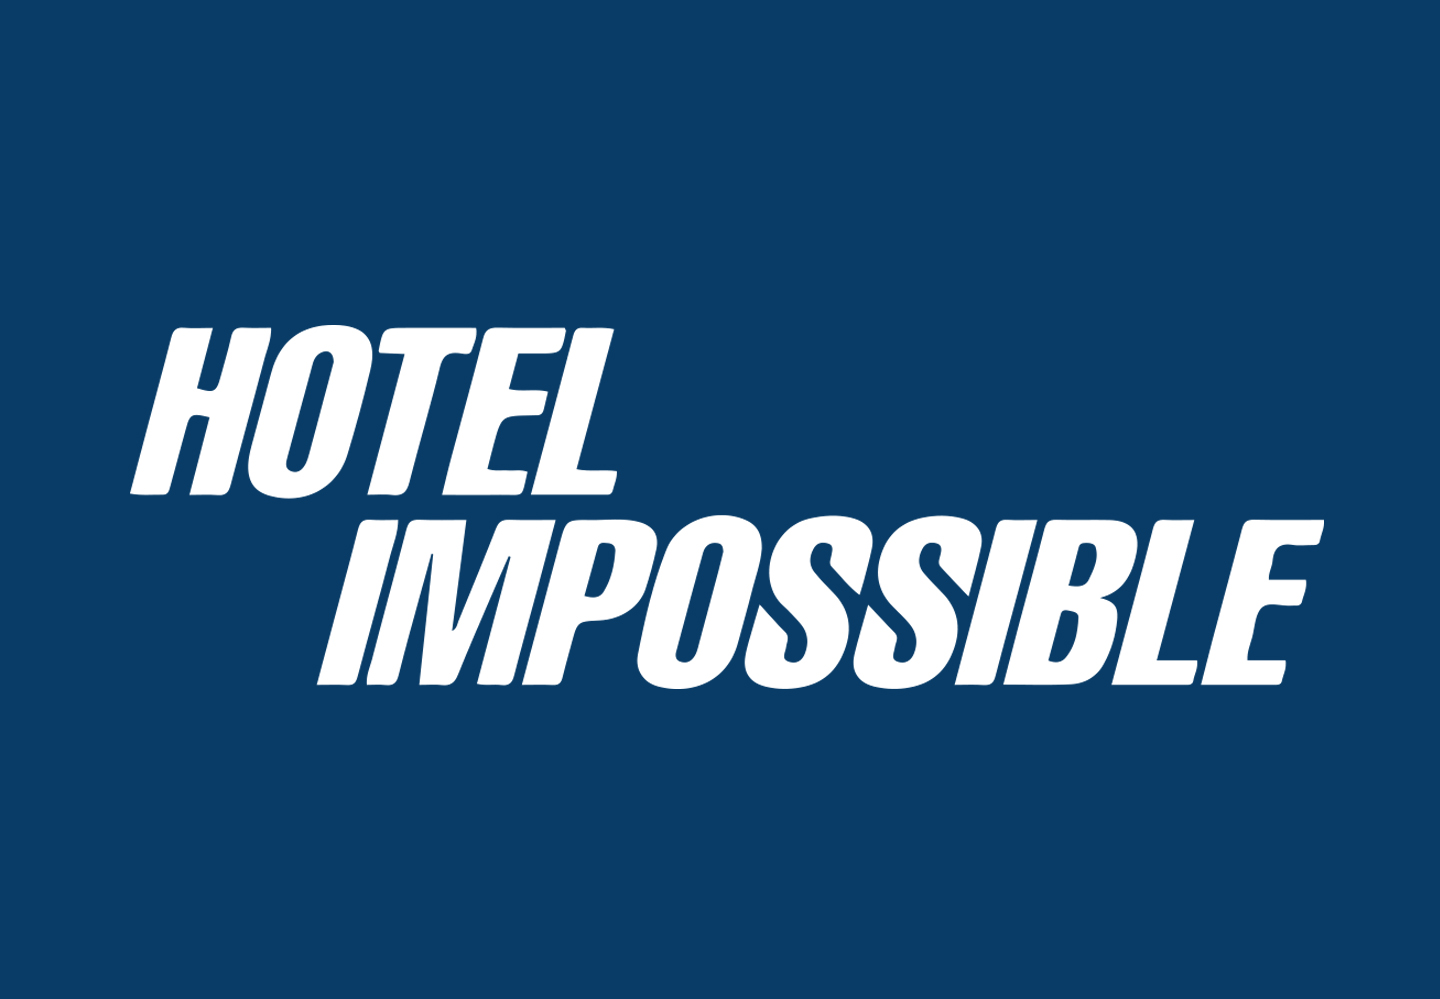 As Seen On Hotel Impossible